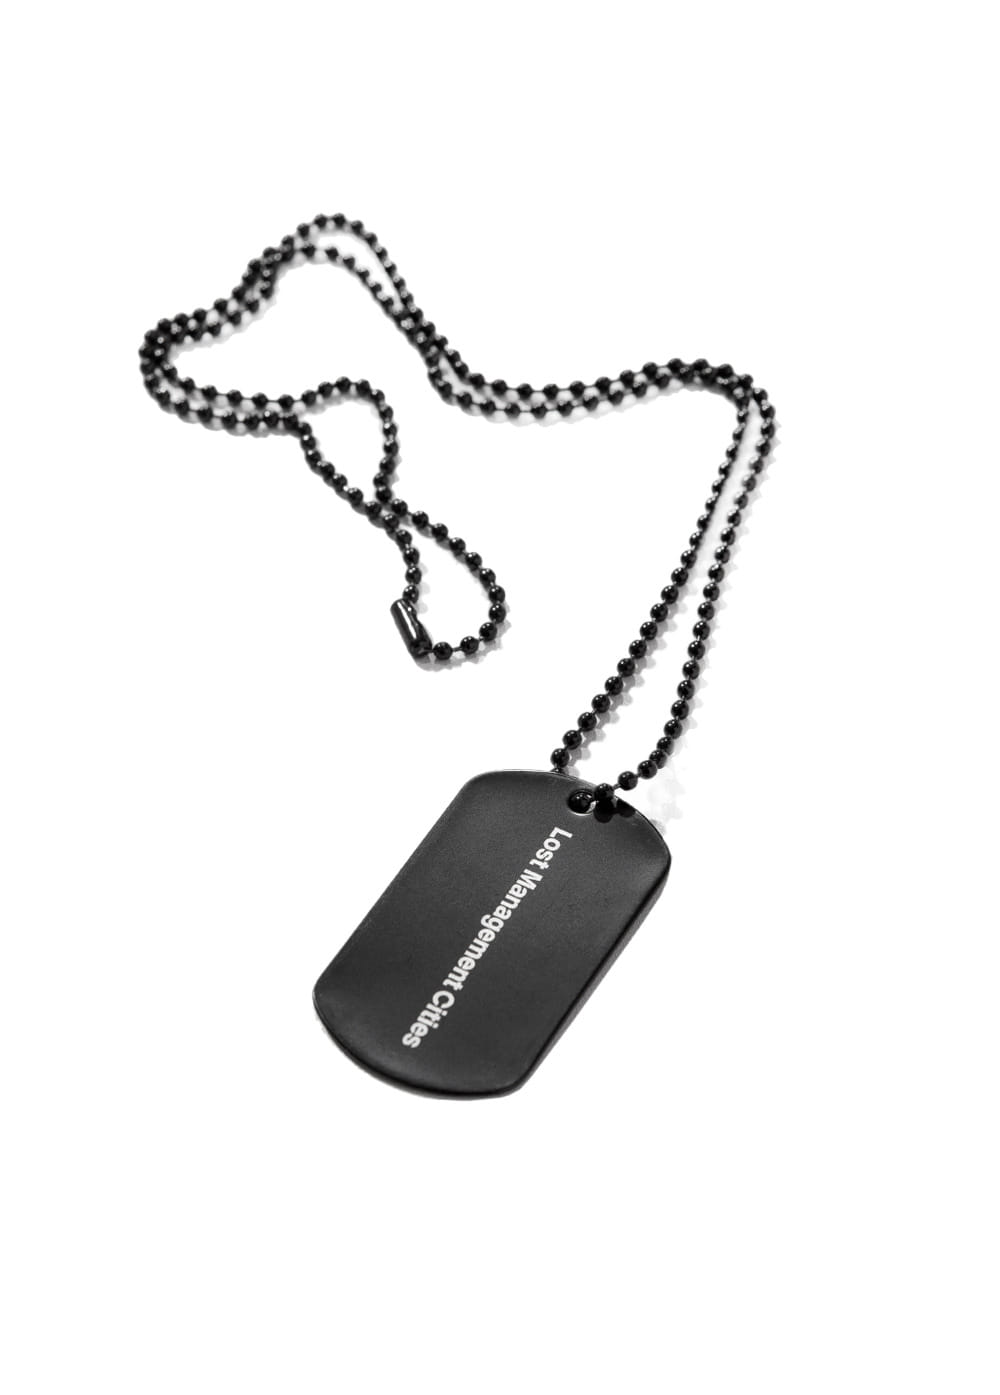 OG DOG TAG REMADE BY LMC black